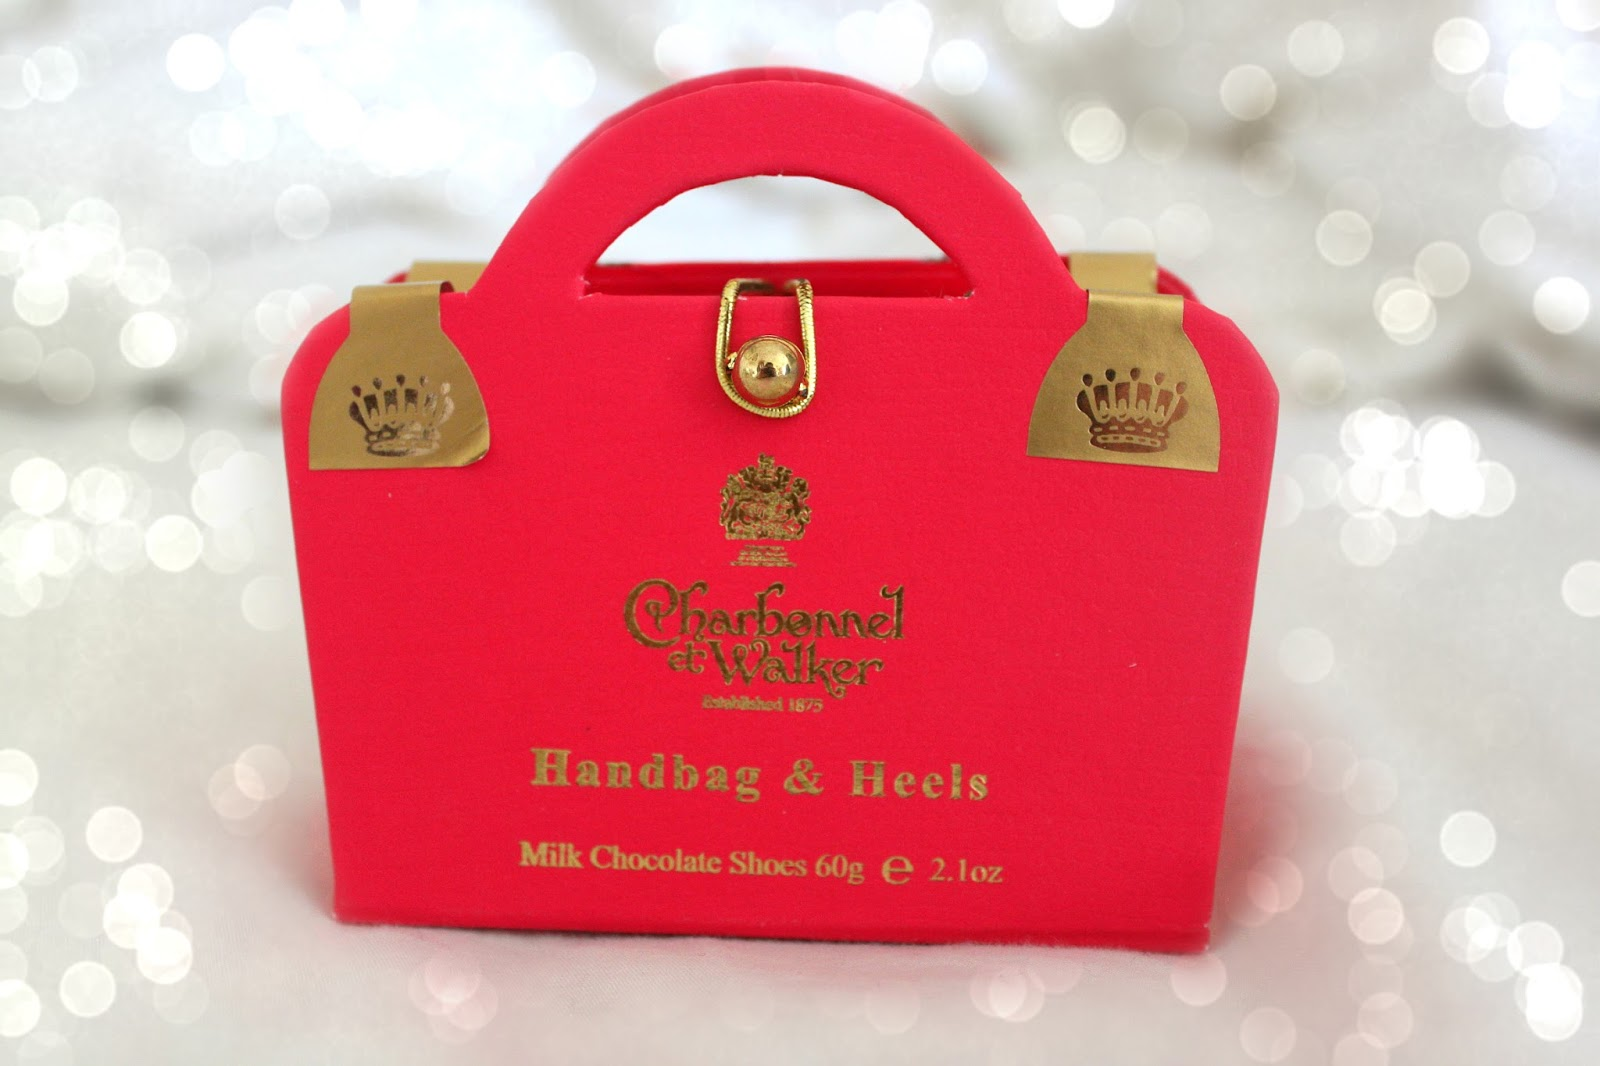 676c42a978 Charbonnel et Walker Chocolate Handbag   Heels in Pink and Gold Packaging  from John Lewis